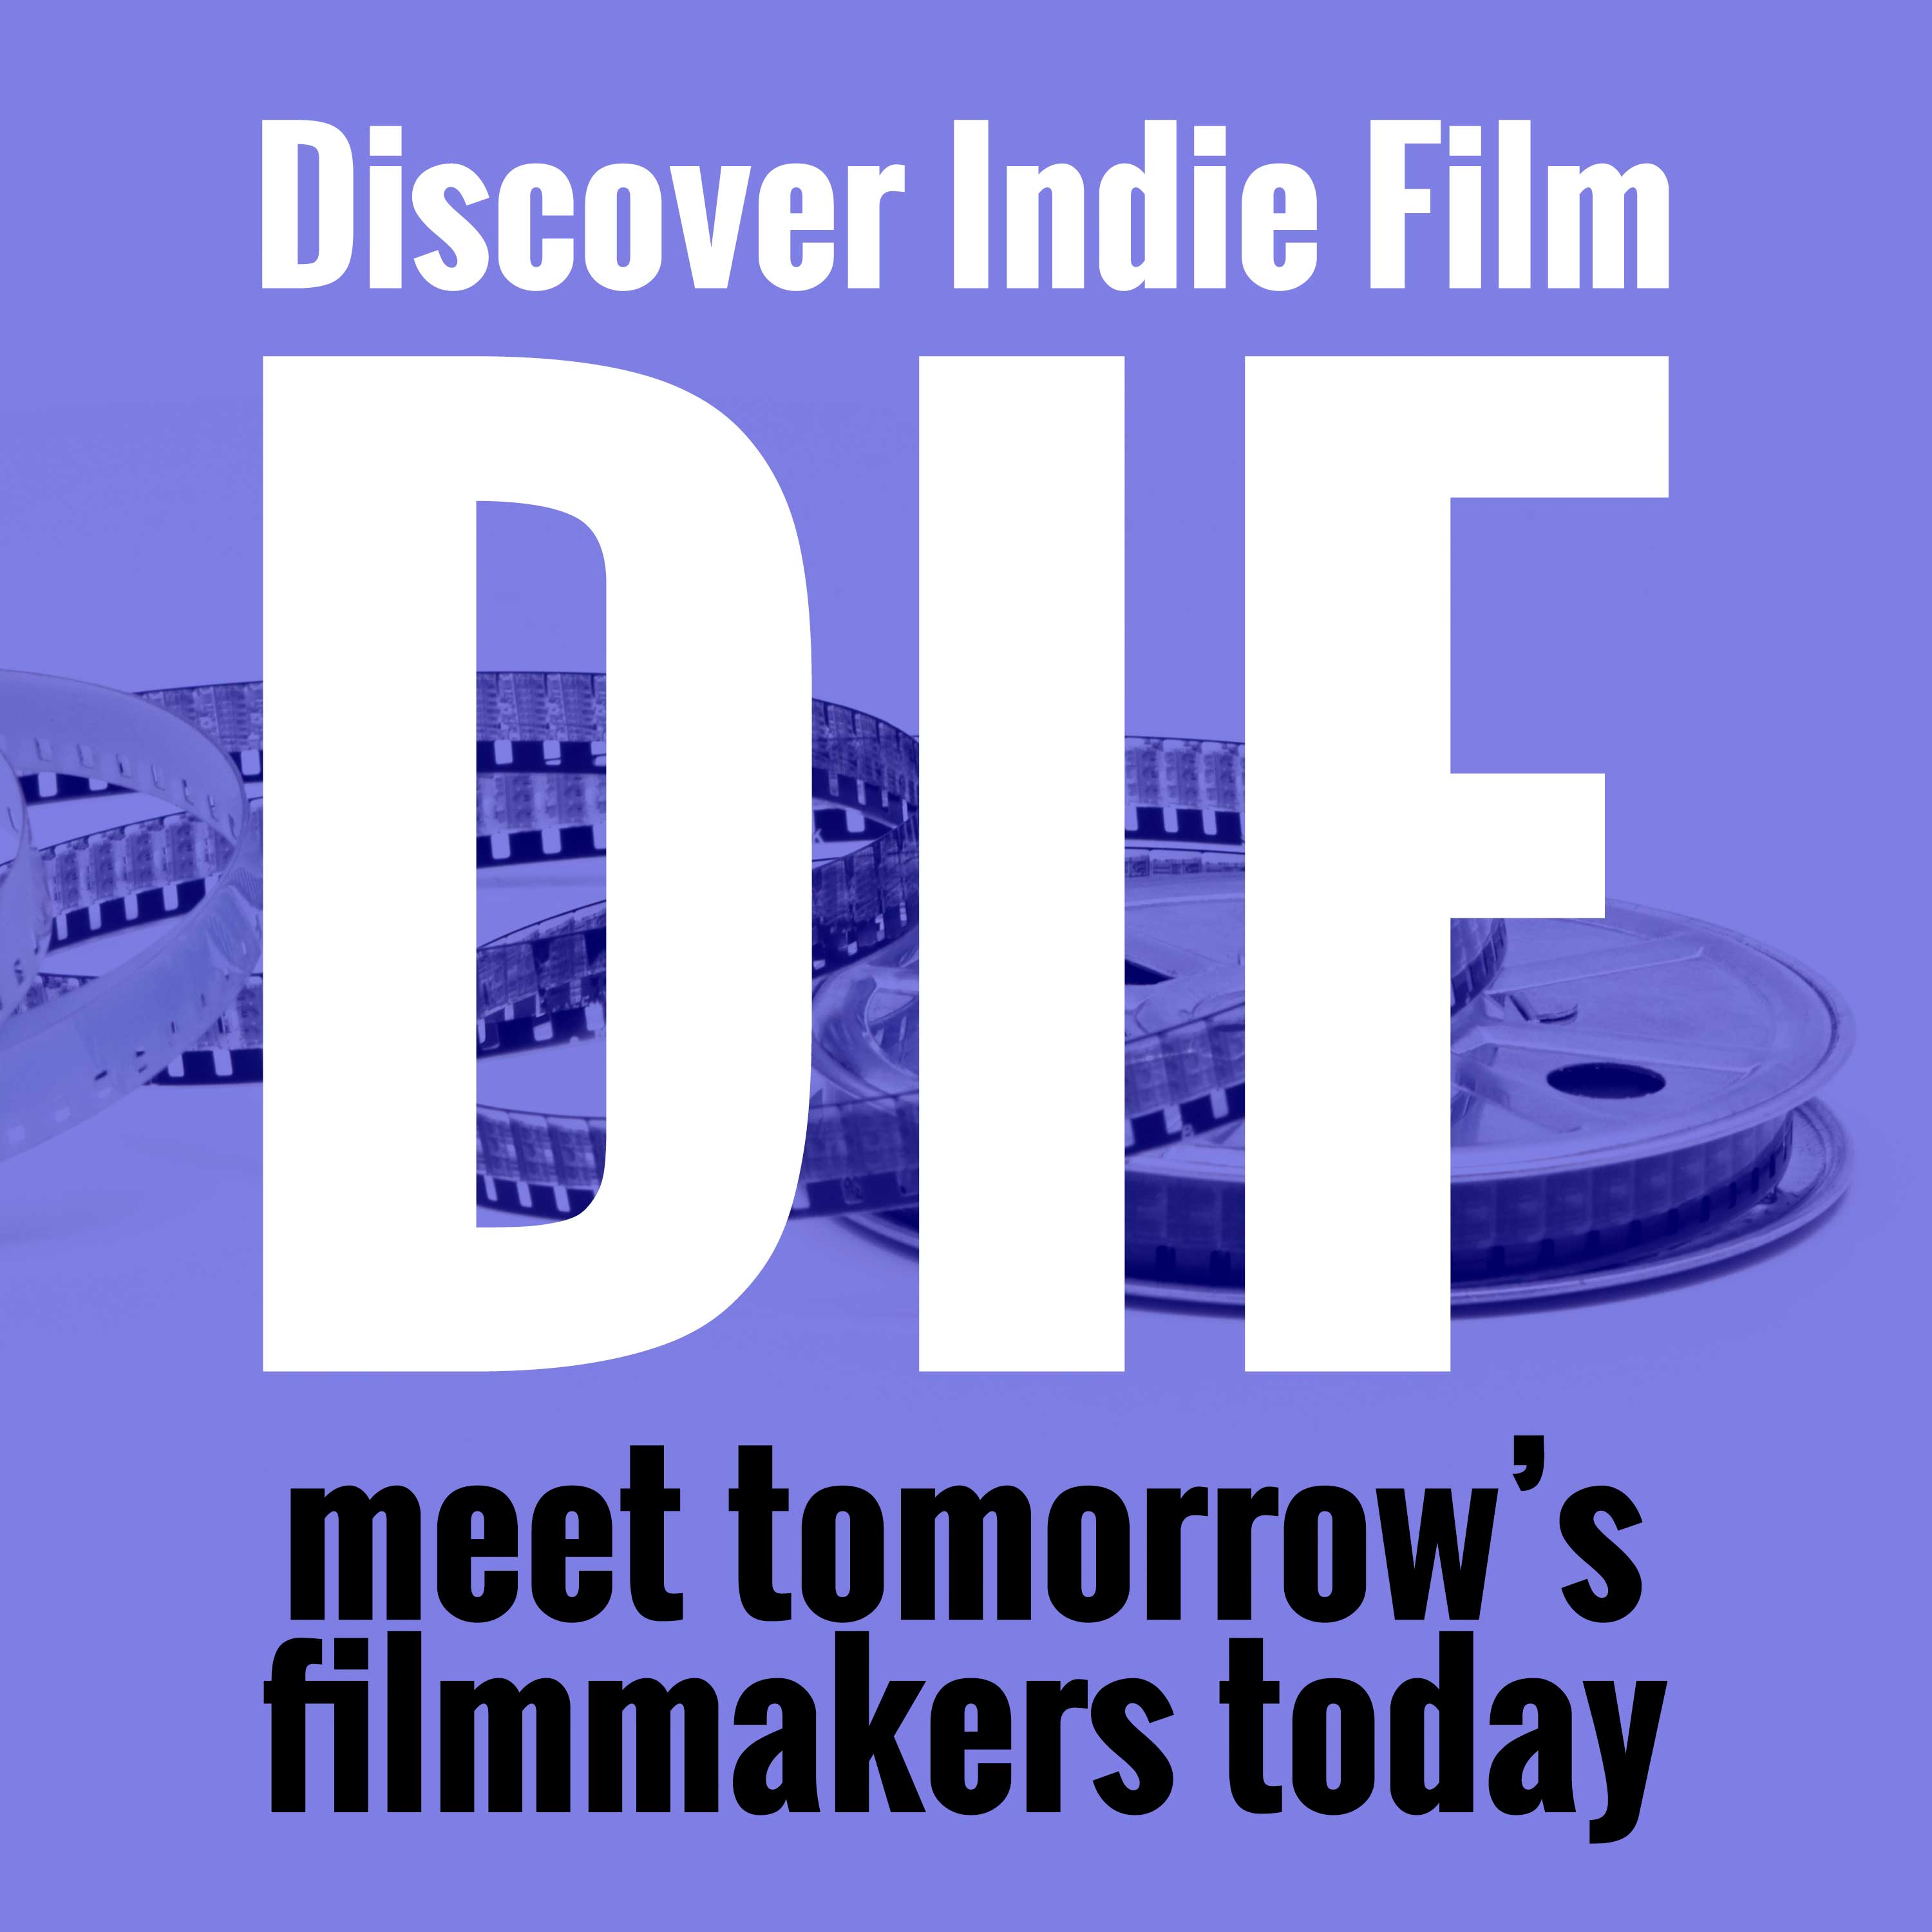 Discover Indie Film